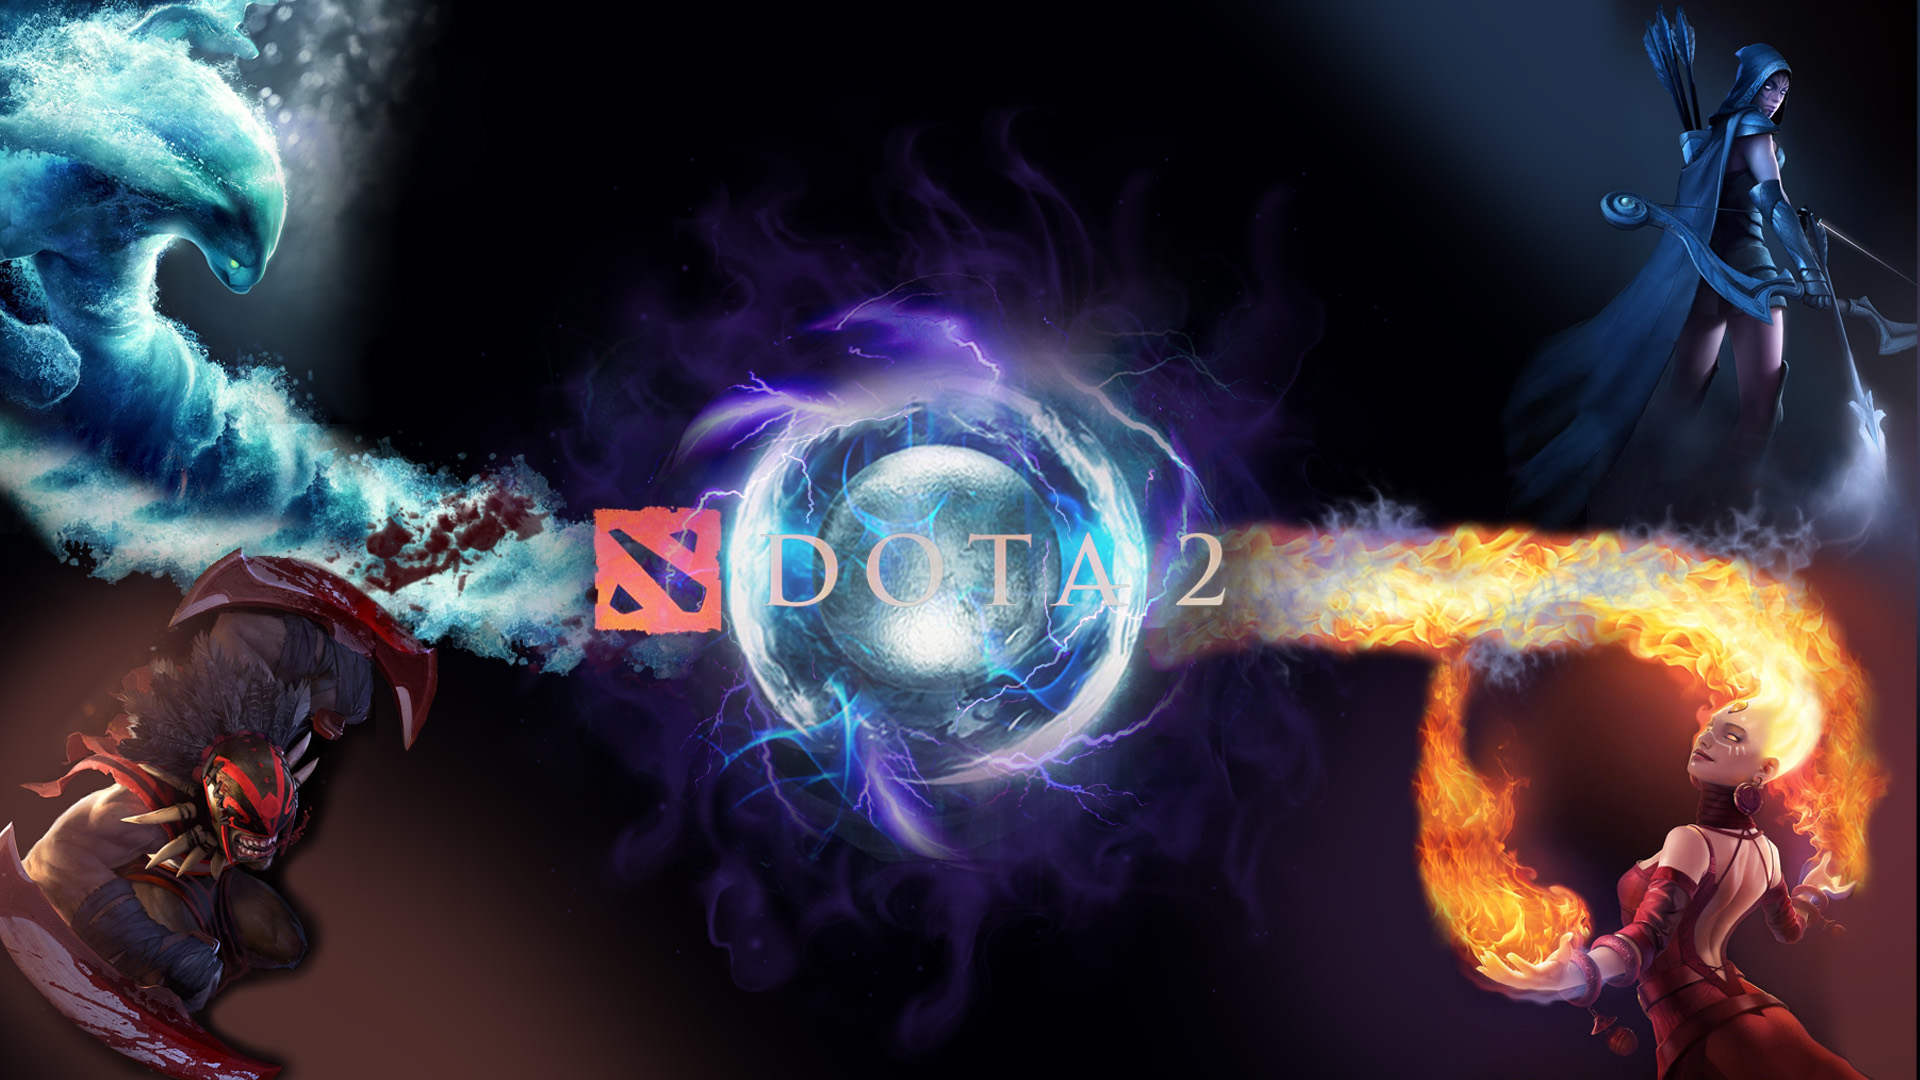 DotA 2 HD Wallpaper   Dota 2 Wallpaper 1920x1080